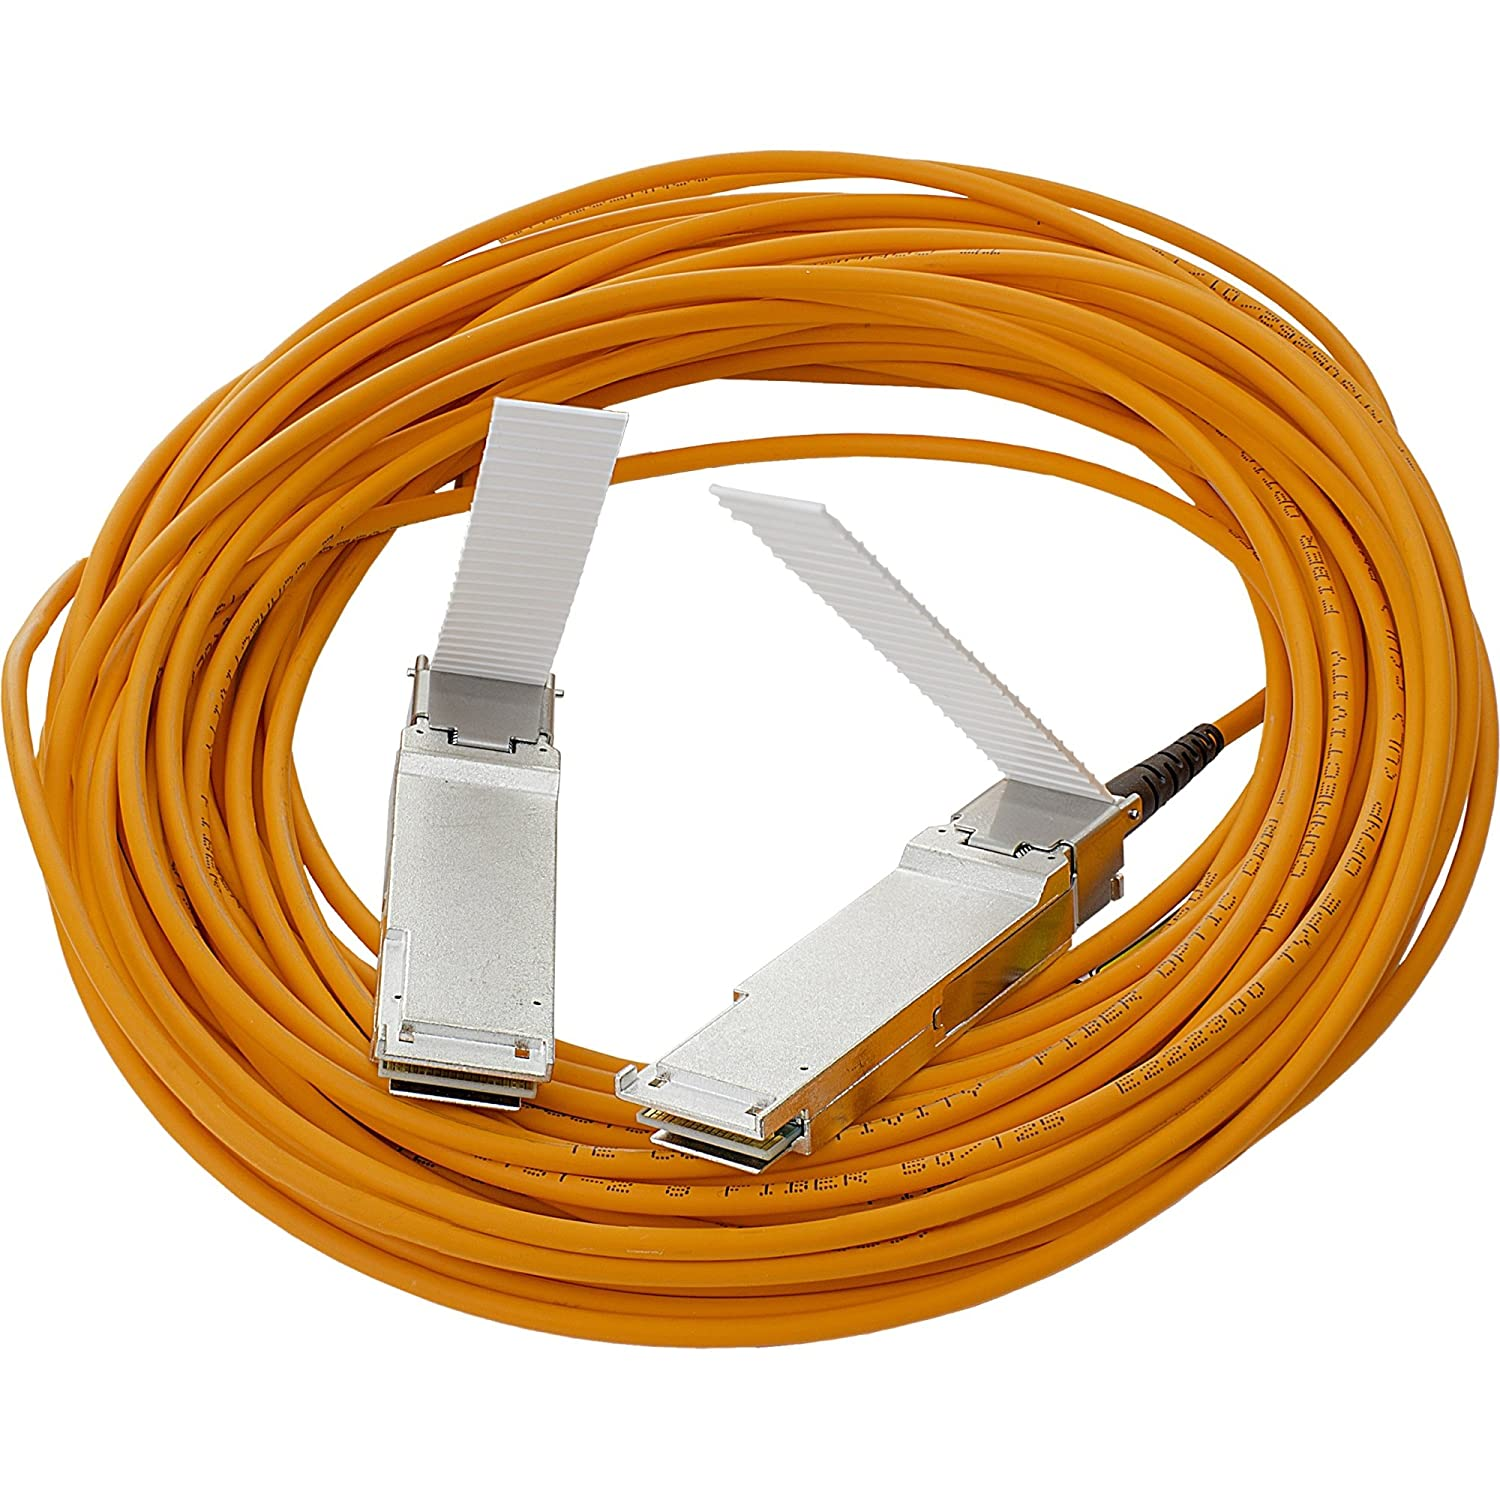 HP BladeSystem c-Class 40G QSFP+ to QSFP+ 7m Active Optical Cable ...